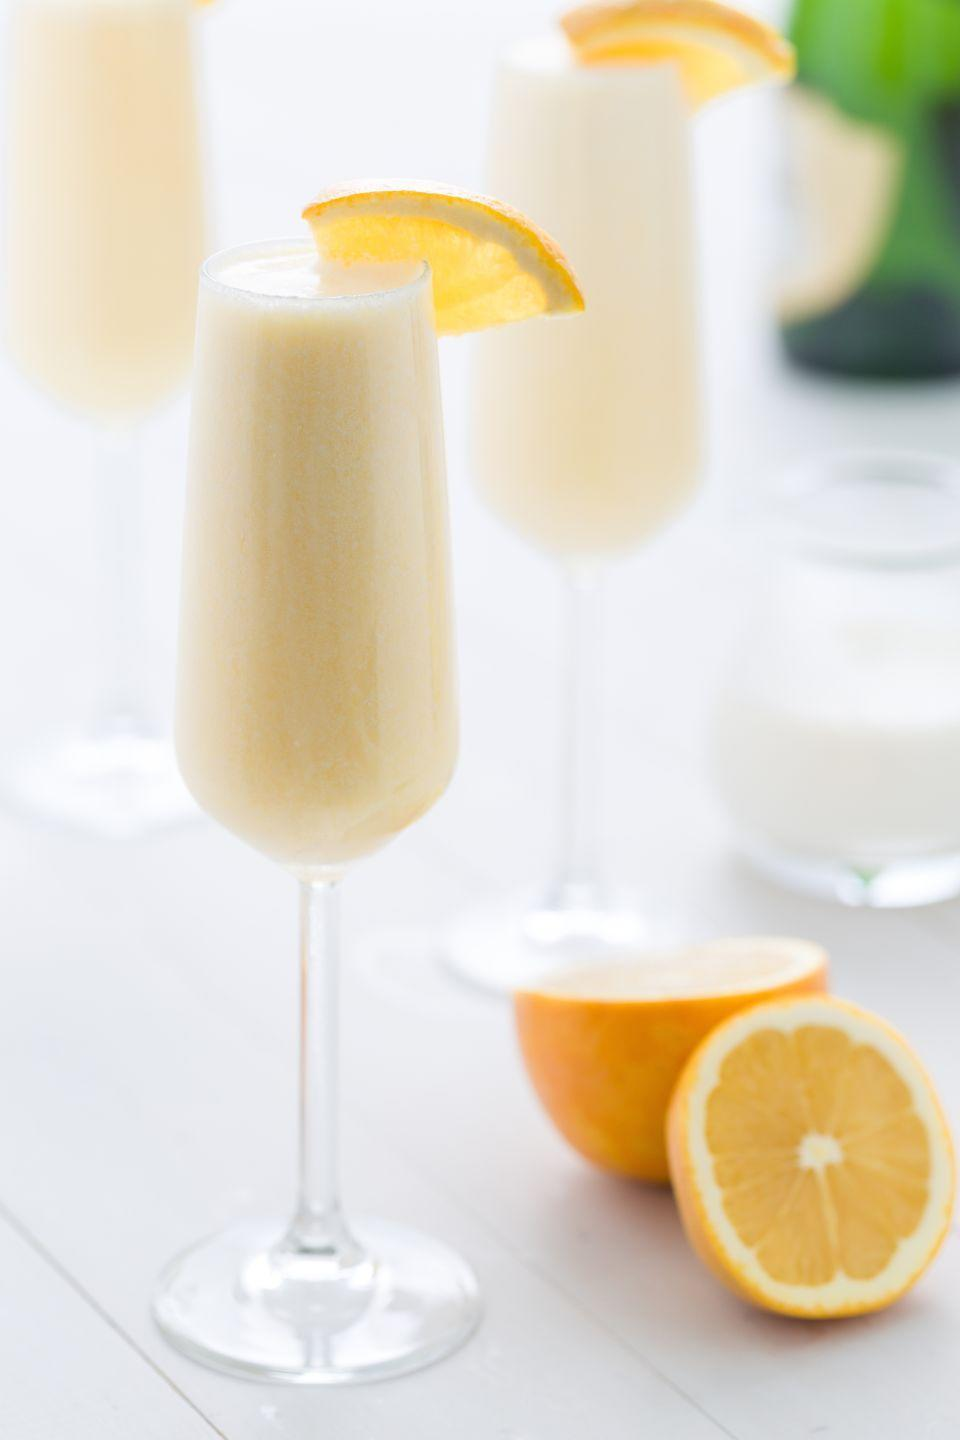 """<p>Think of these as the grown-up way to drink an Orange Julius. </p><p>Get the recipe from <a href=""""https://www.delish.com/cooking/recipe-ideas/recipes/a46969/orange-creamsicle-mimosas-recipe/"""" rel=""""nofollow noopener"""" target=""""_blank"""" data-ylk=""""slk:Delish"""" class=""""link rapid-noclick-resp"""">Delish</a>.</p>"""